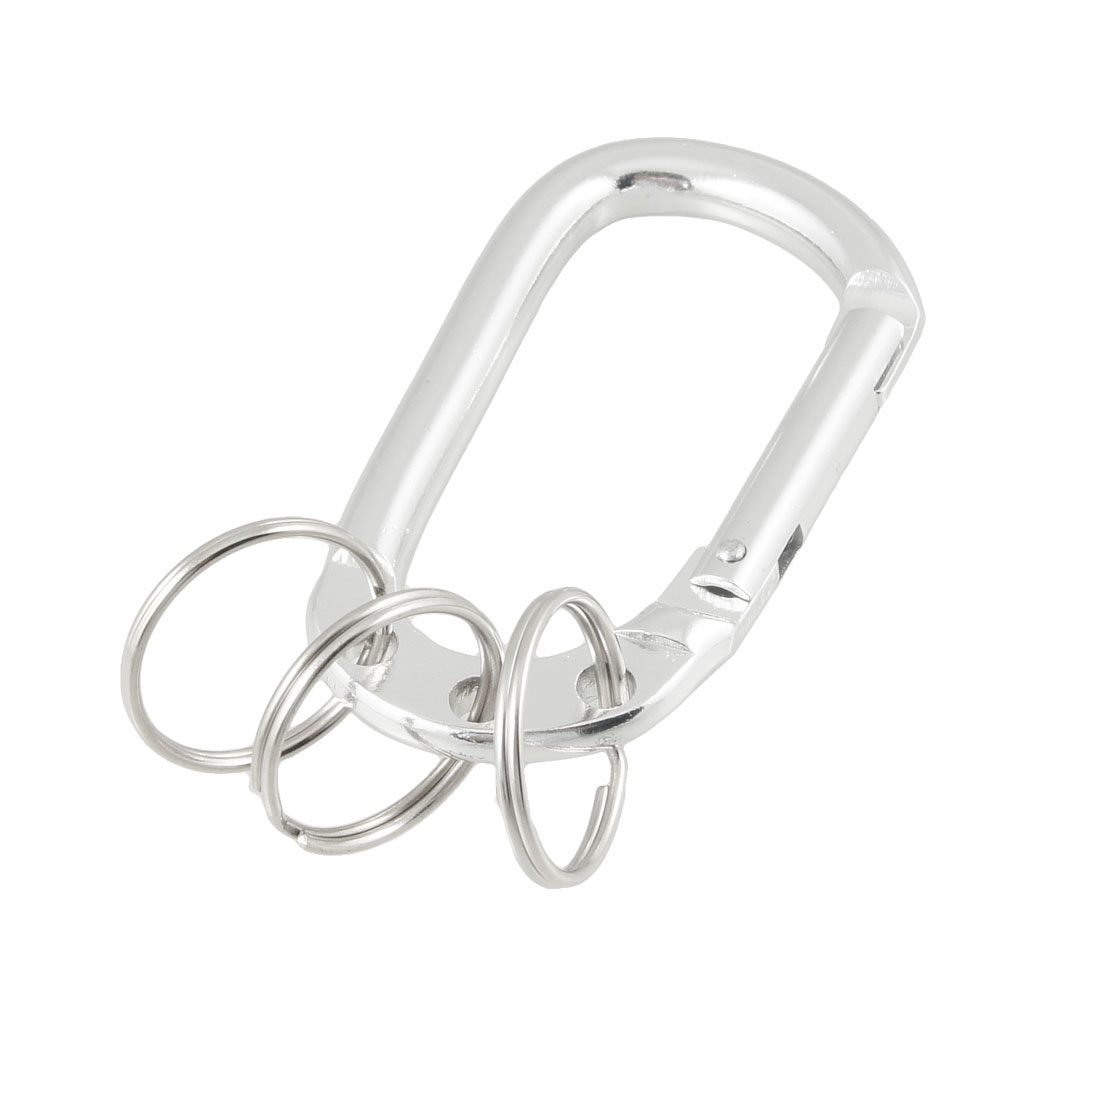 Silver Tone Metal D Shape Screw Lock Carabiner Key Ring Connected 3 Keyrings